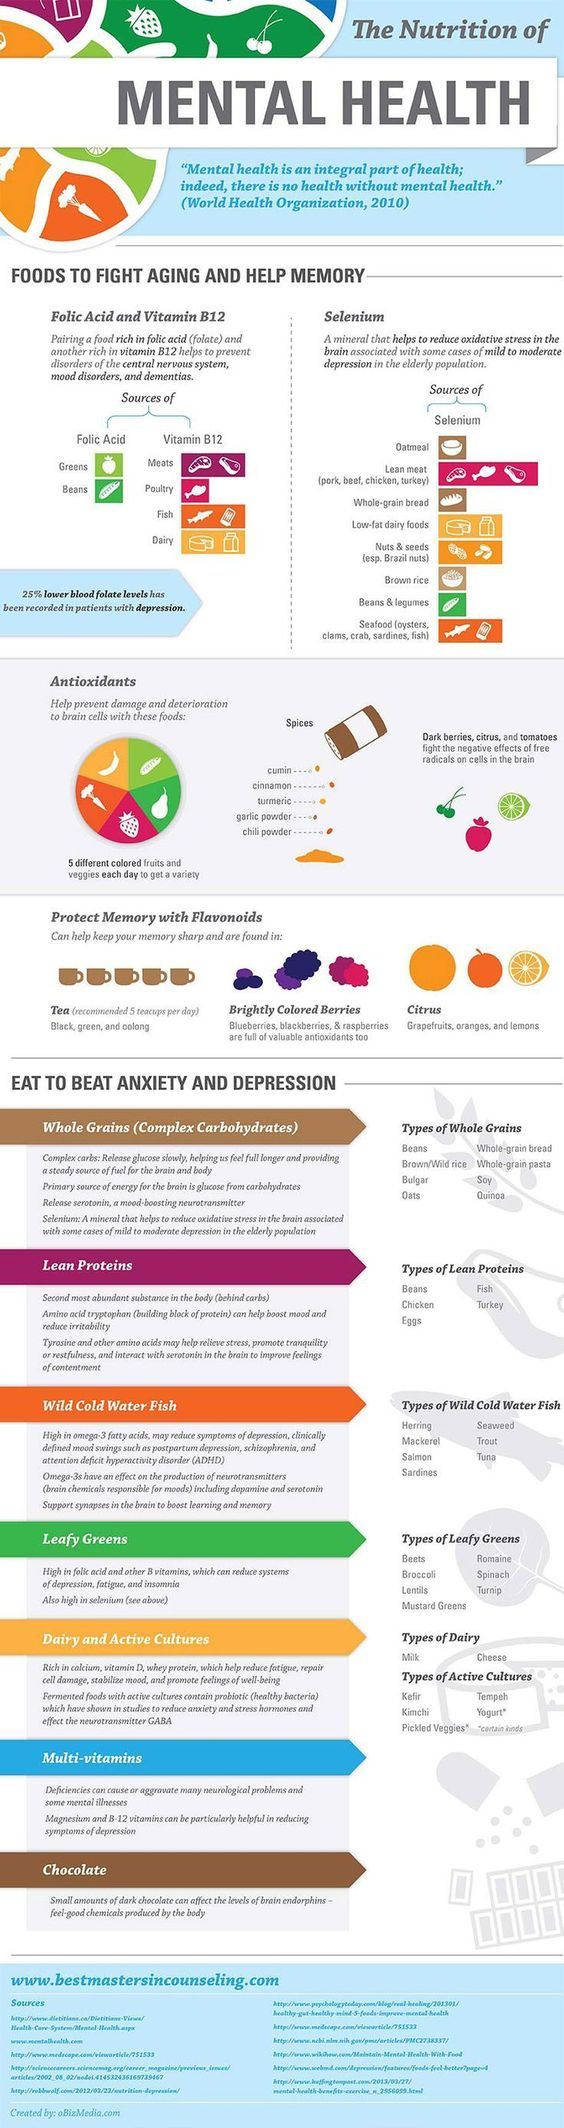 Nutrition of Mental Health